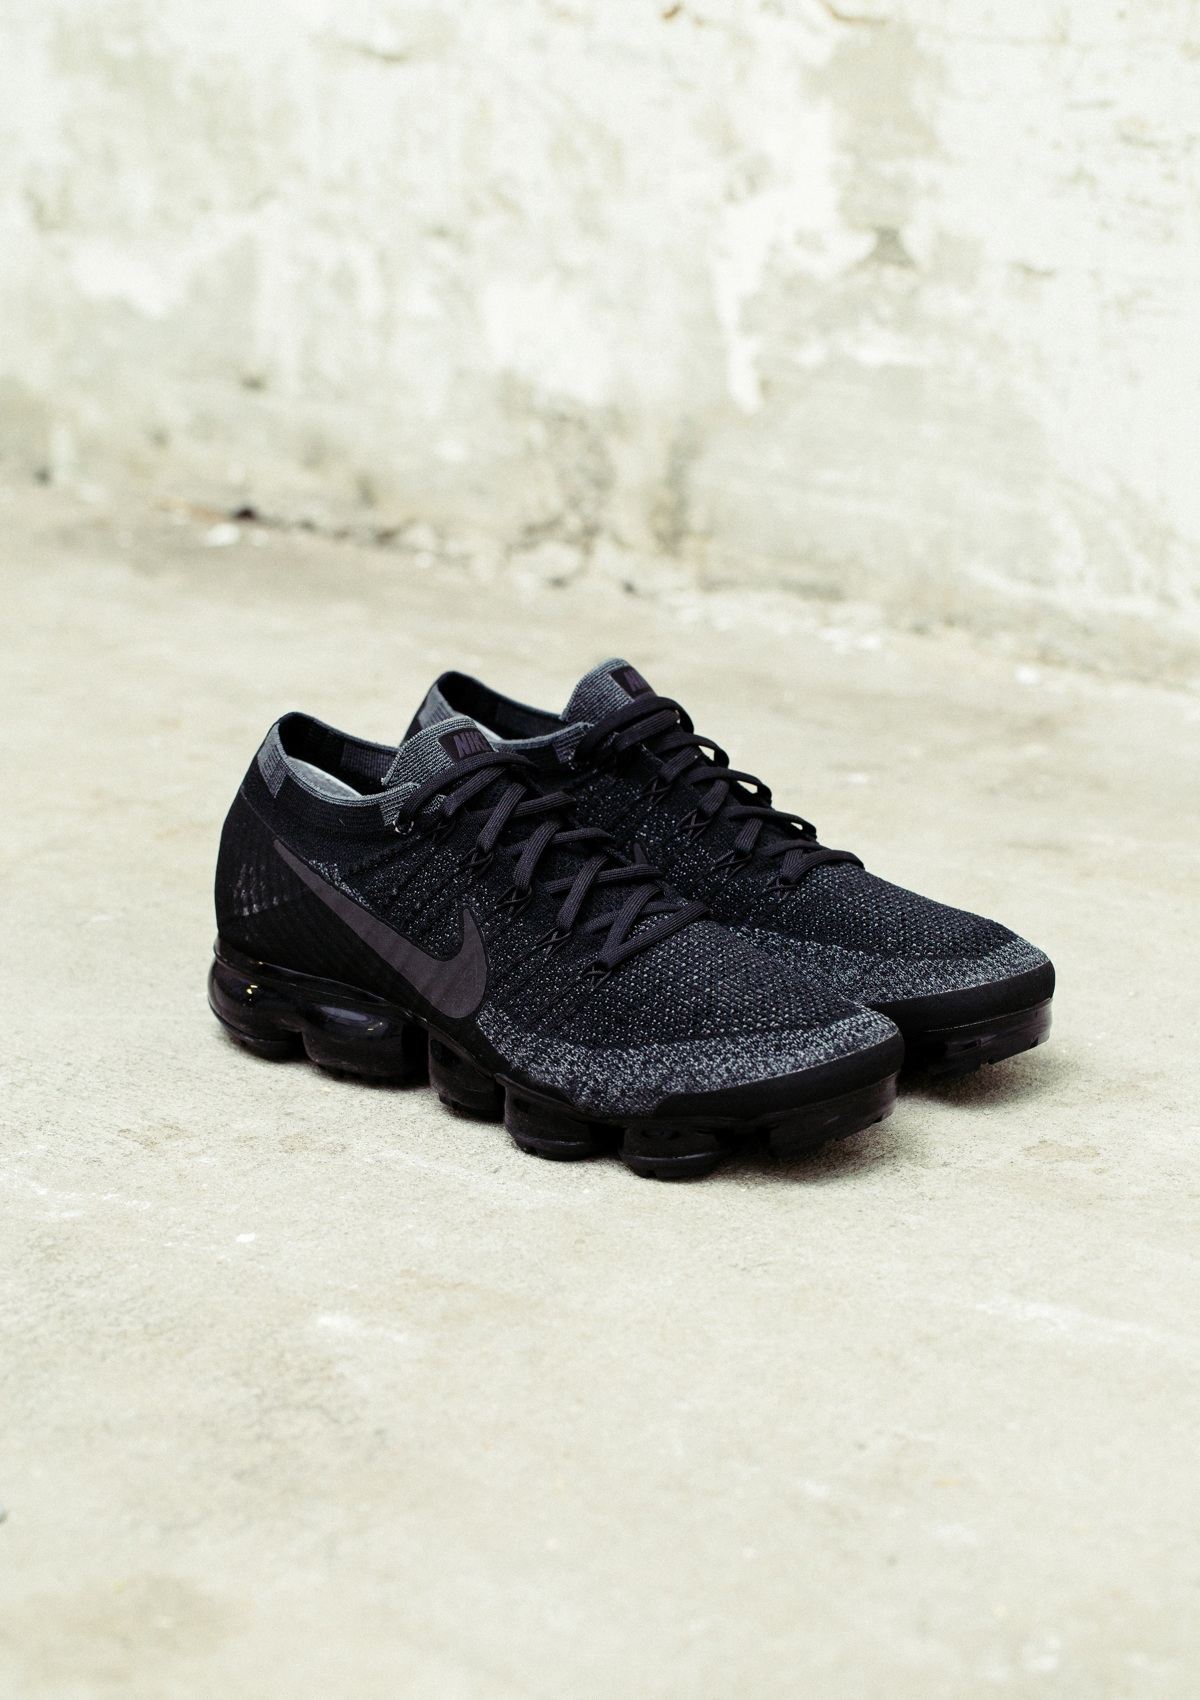 Nike Air Vapormax Oreo,Nike Air Vapormax The Town of King's Point